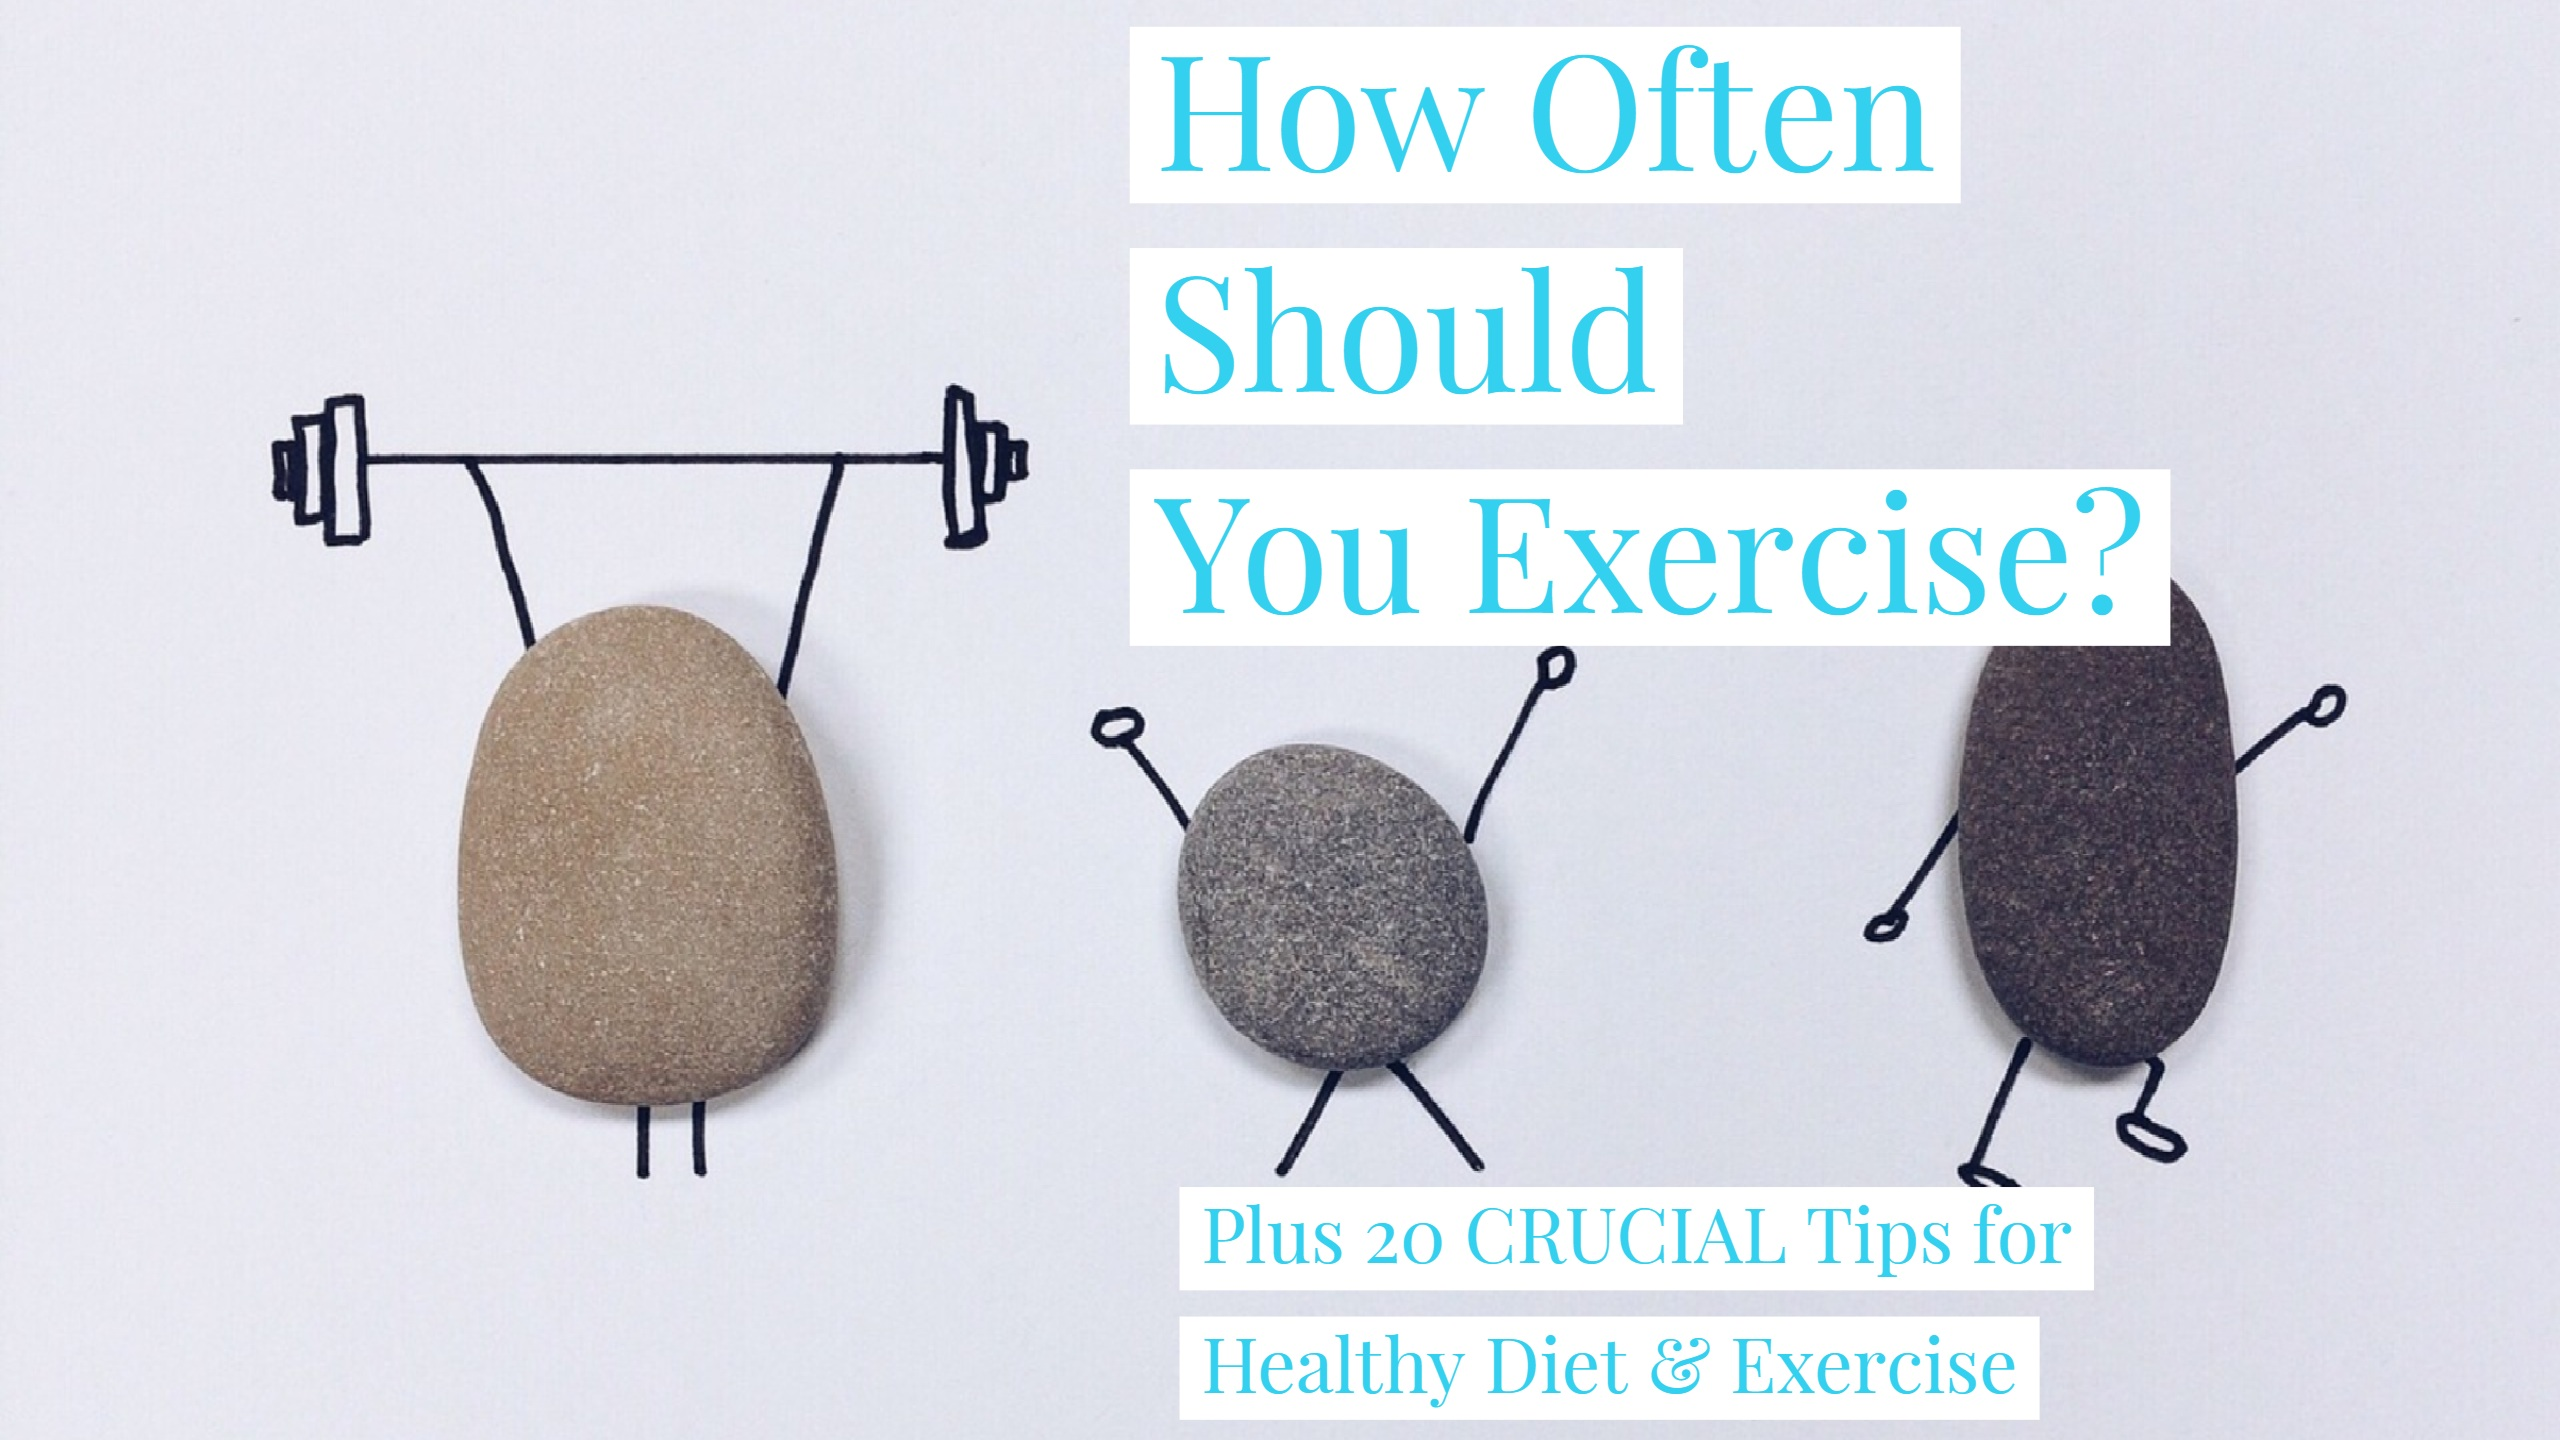 How often should you exercise each week?